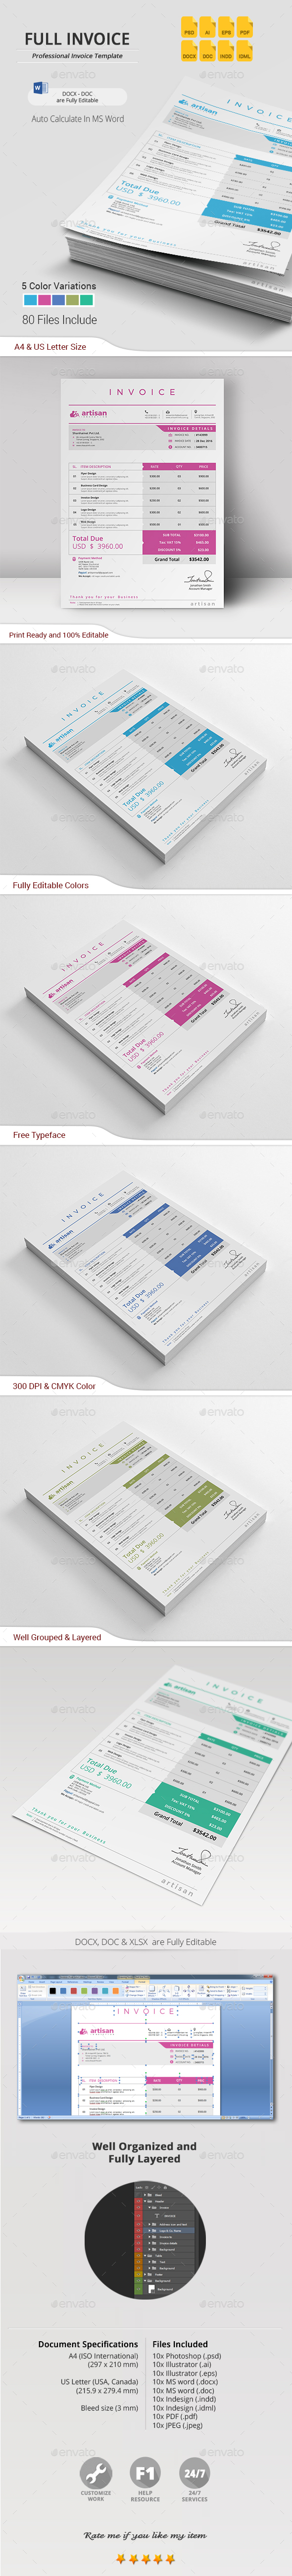 Invoice Template PSD  Vector EPS  InDesign INDD  AI Illustrator  MS     Invoice Template PSD  Vector EPS  InDesign INDD  AI Illustrator  MS Word